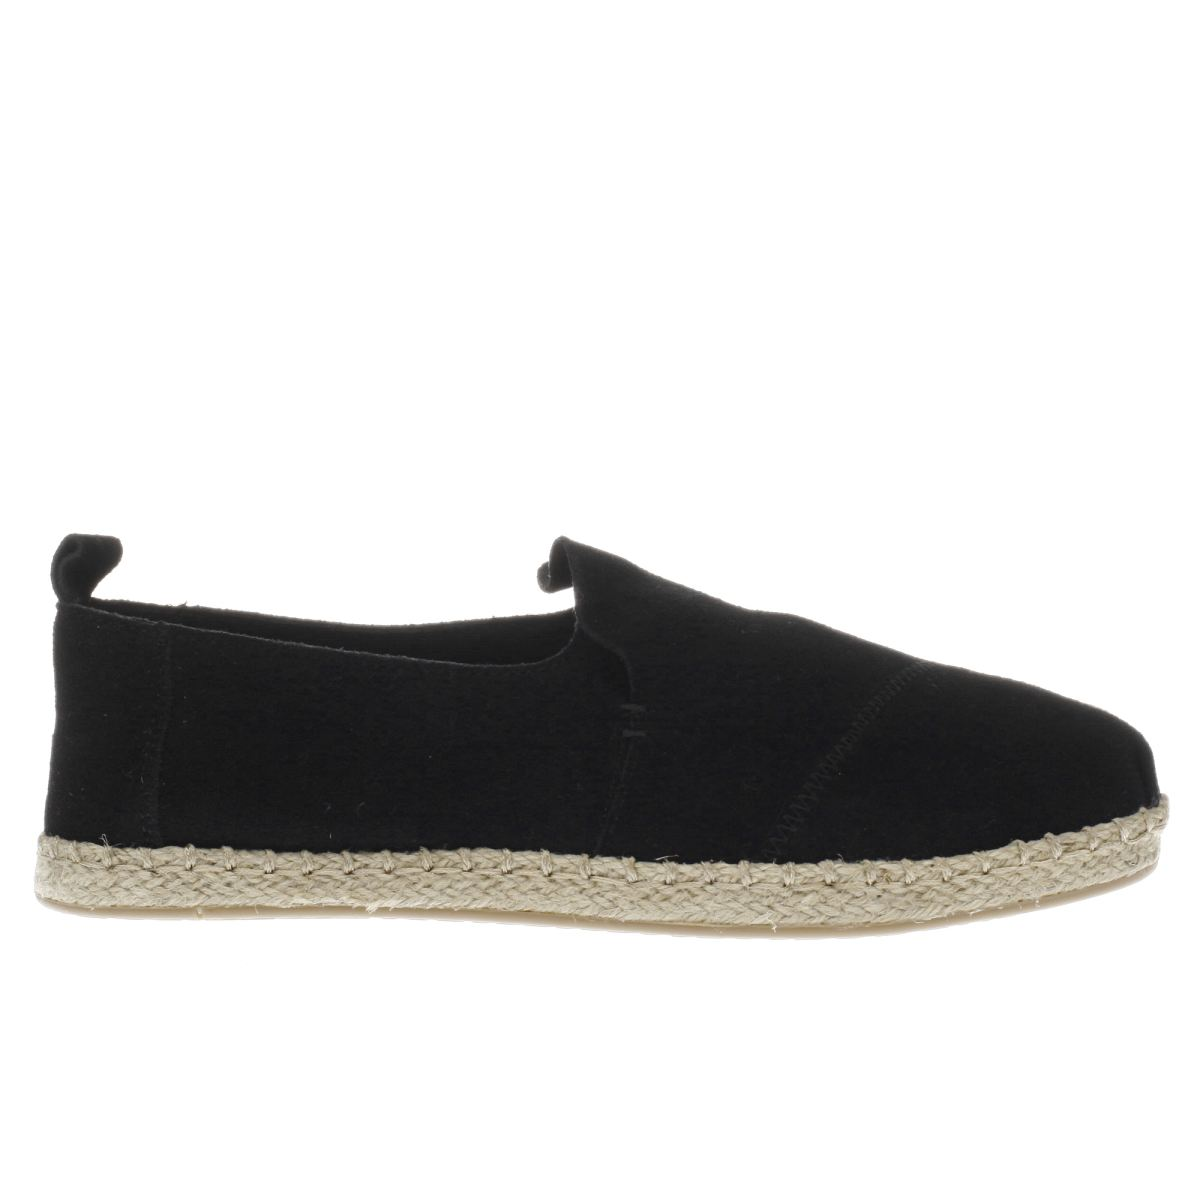 toms black deconstructed alpargata flat shoes